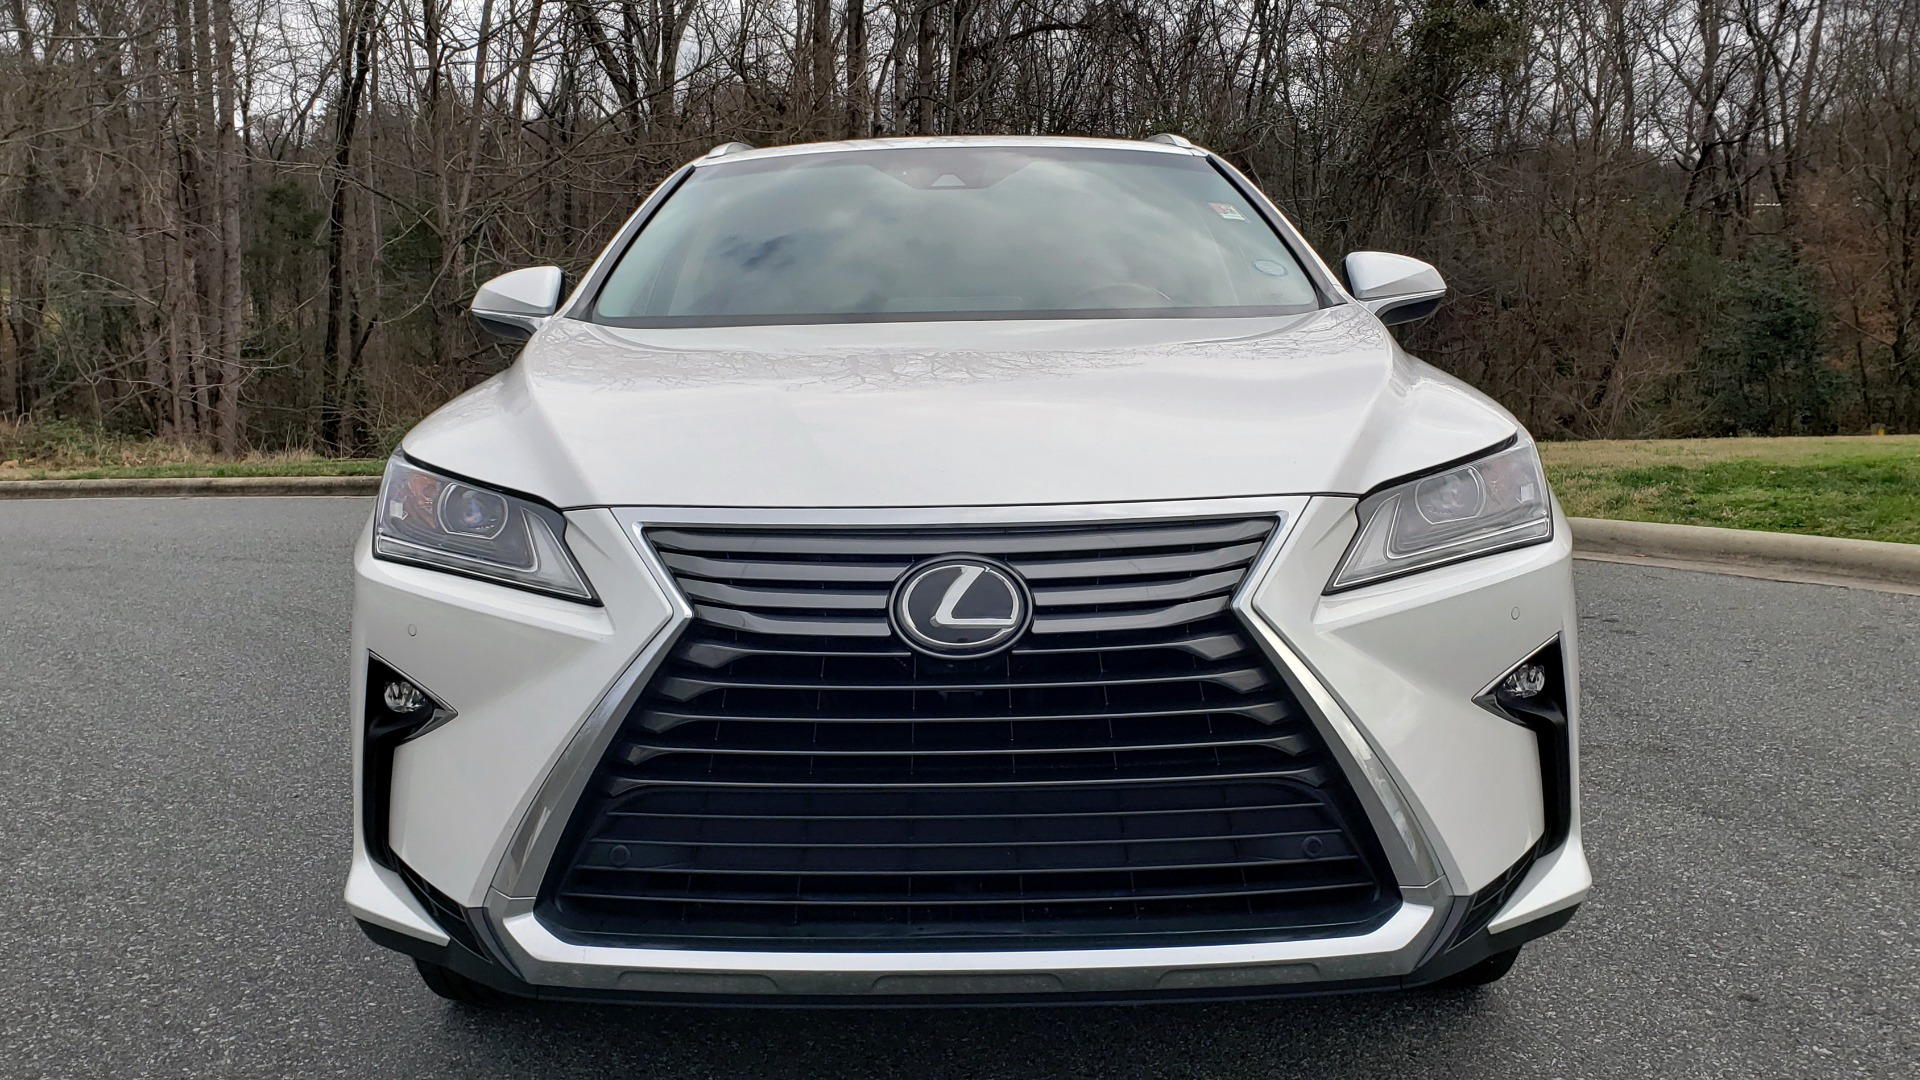 Used 2017 Lexus RX 350 PREMIUM / BSM / SNRF / VENT SEATS / REARVIEW for sale Sold at Formula Imports in Charlotte NC 28227 21